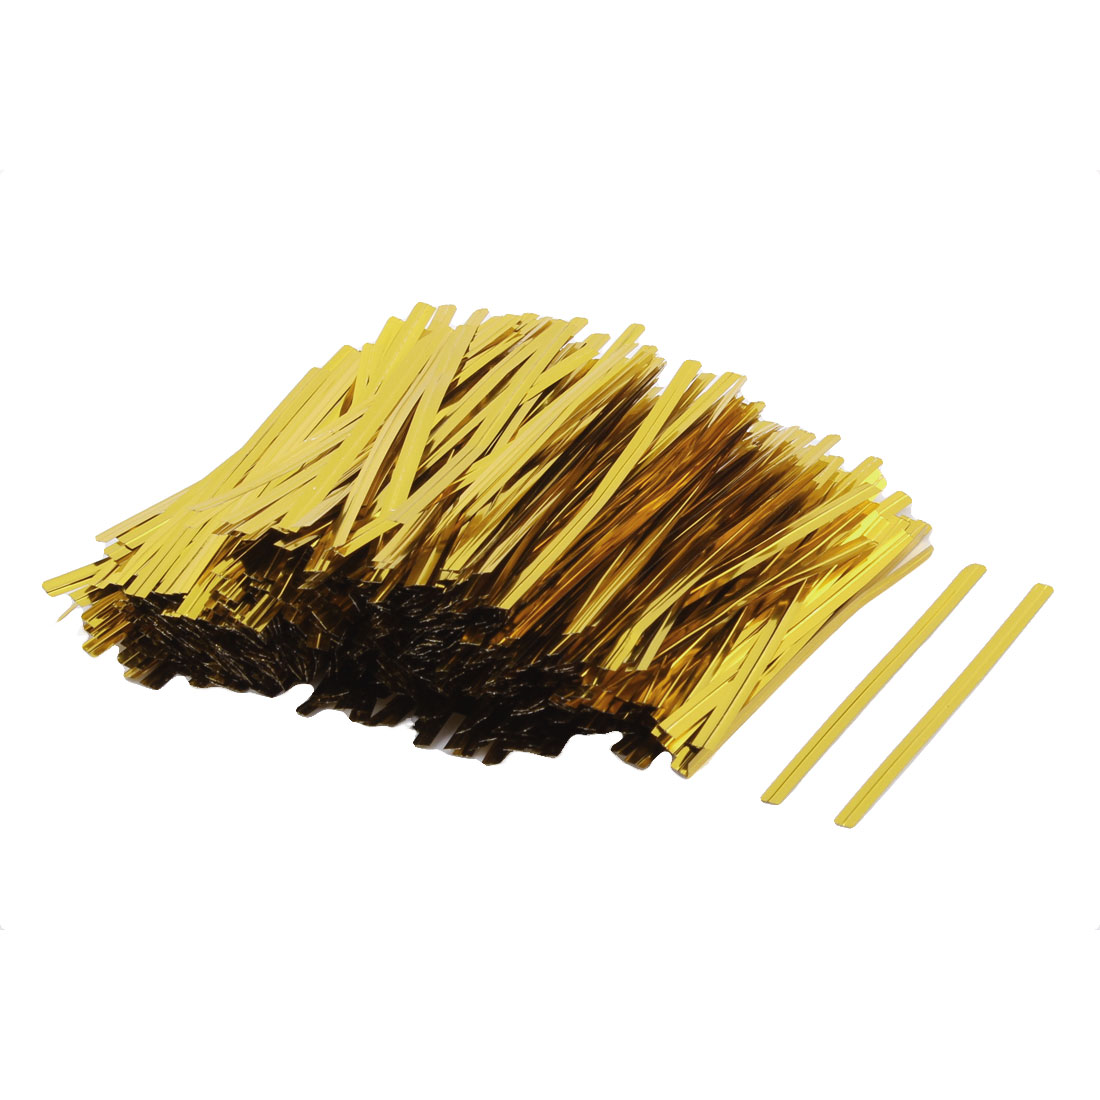 Candy Gift Bags Plastic Coated Metal Cord Packaging Twist Ties Gold Tone 1000pcs